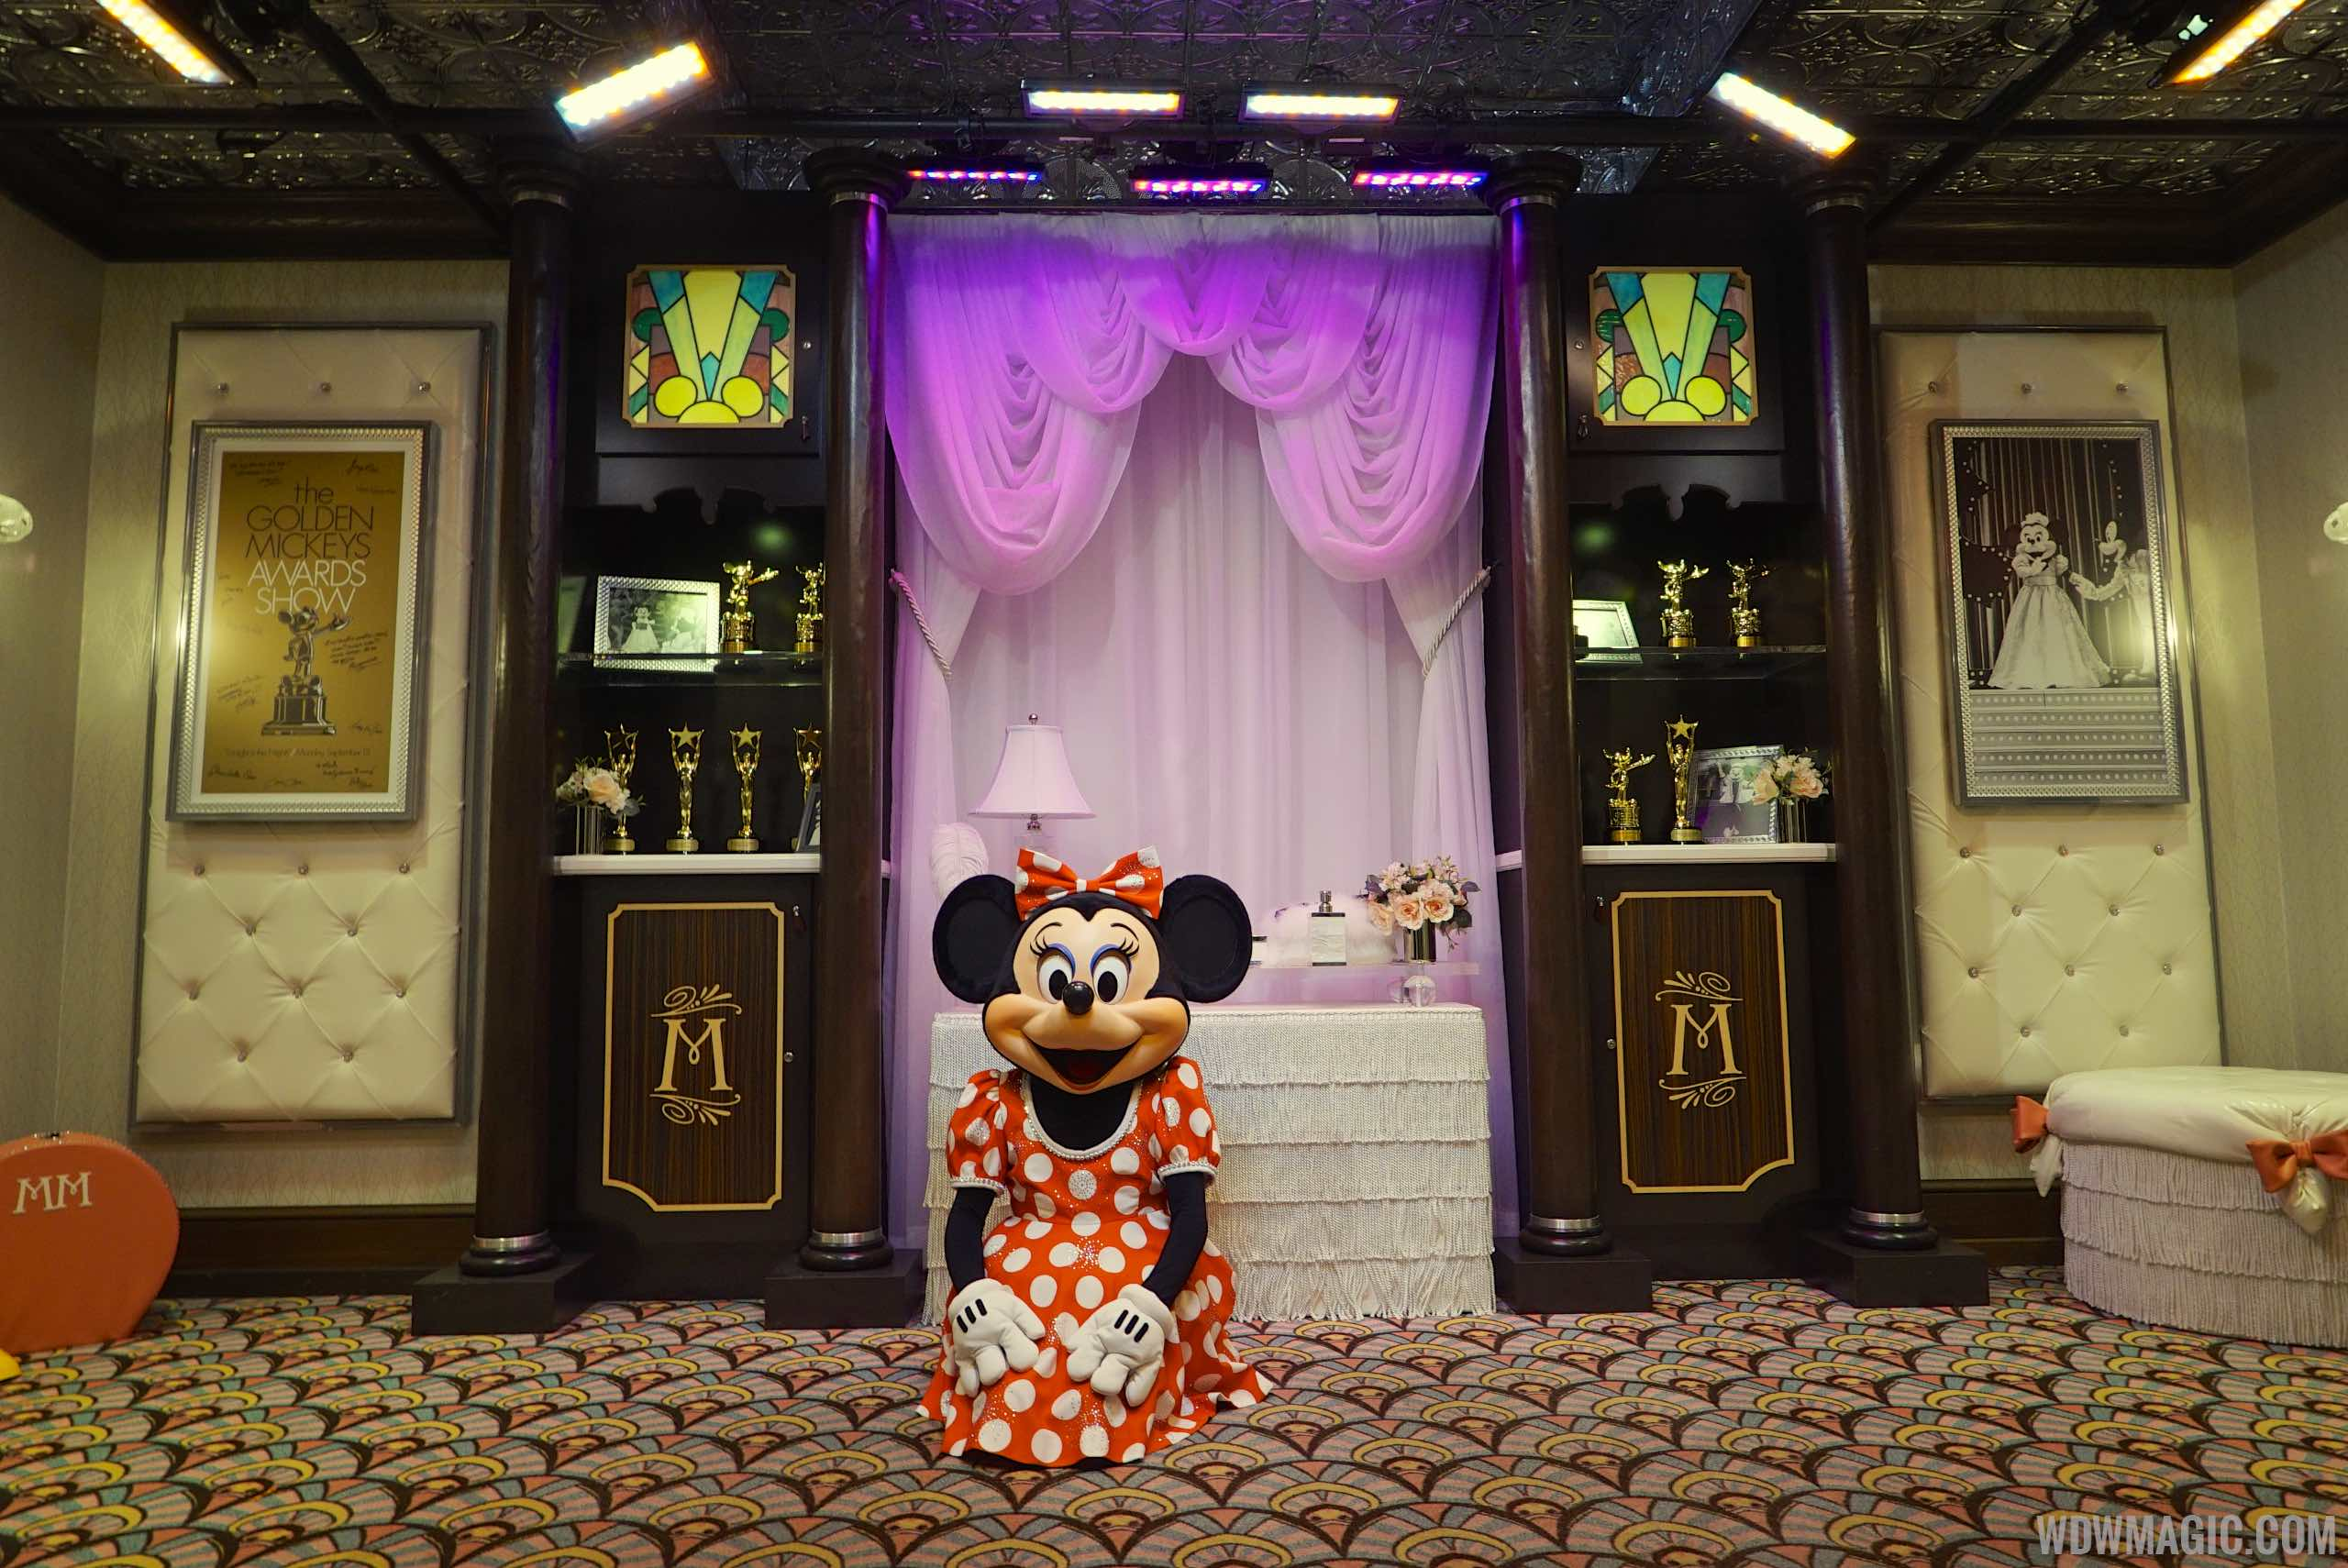 The Magic of Disney Animation - Minnie Mouse meet and greet